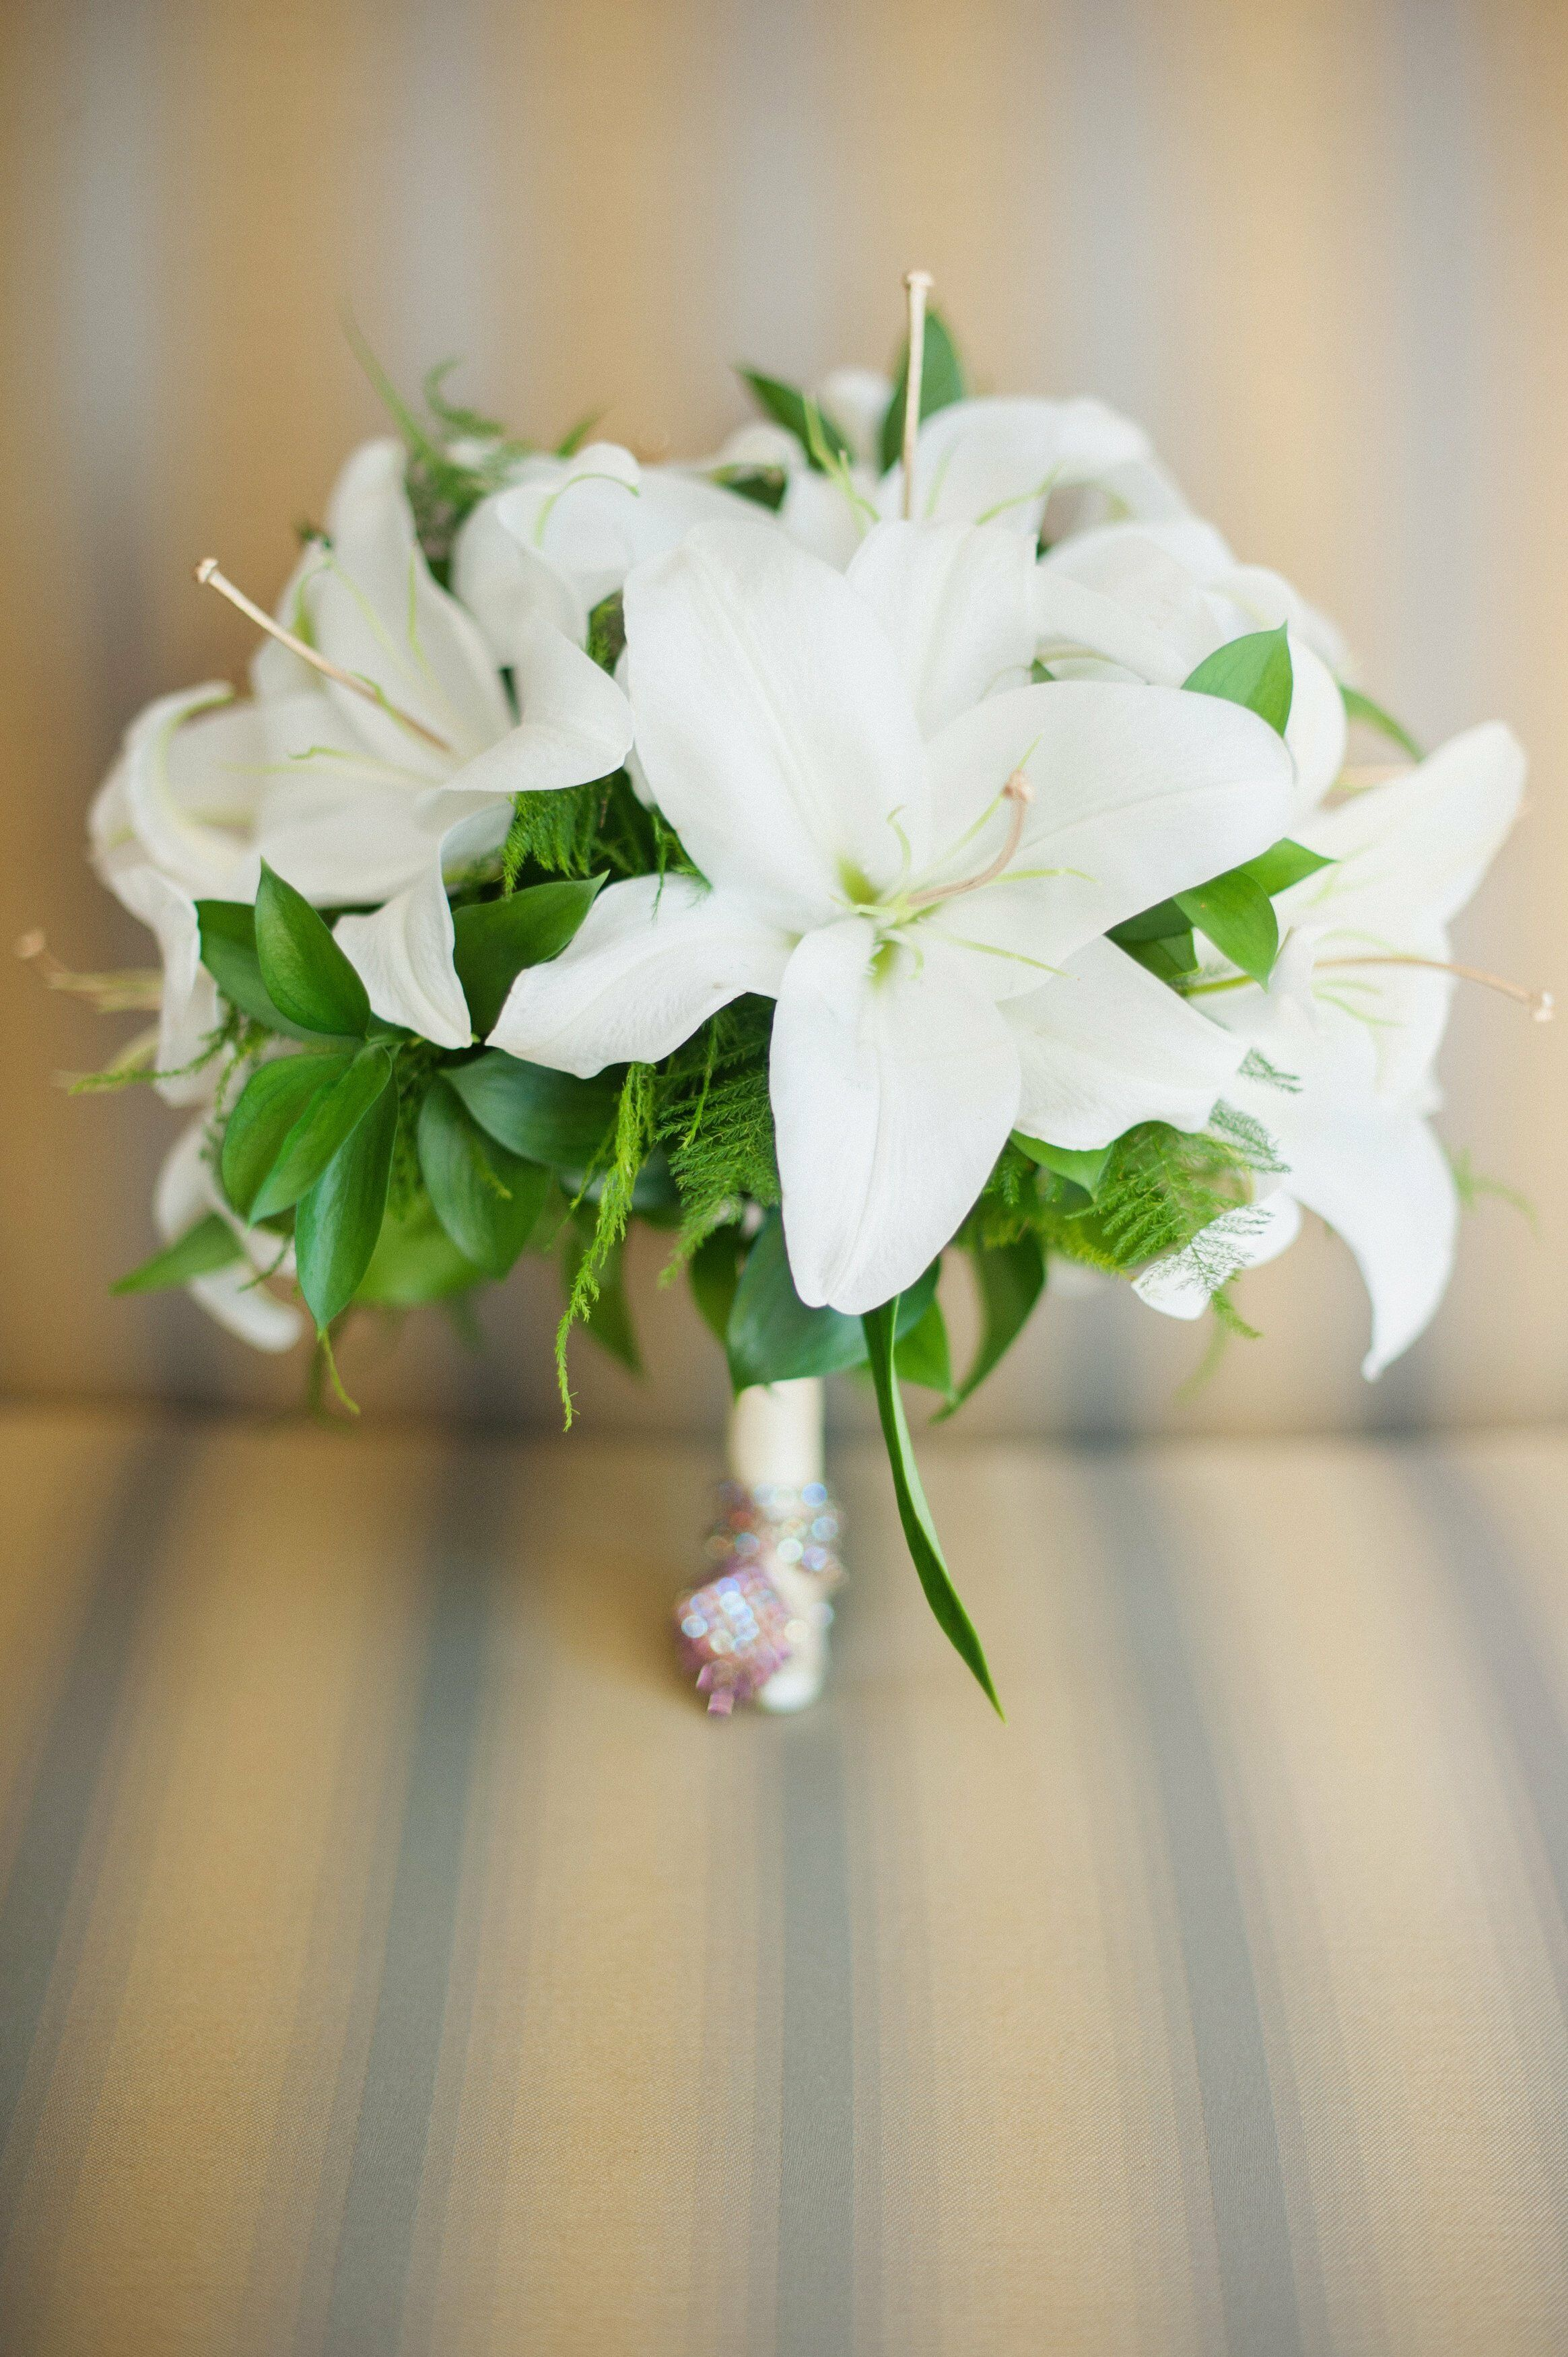 White Calla Lily and Red Rose Bridal Bouquet |Lily Bridal Bouquets